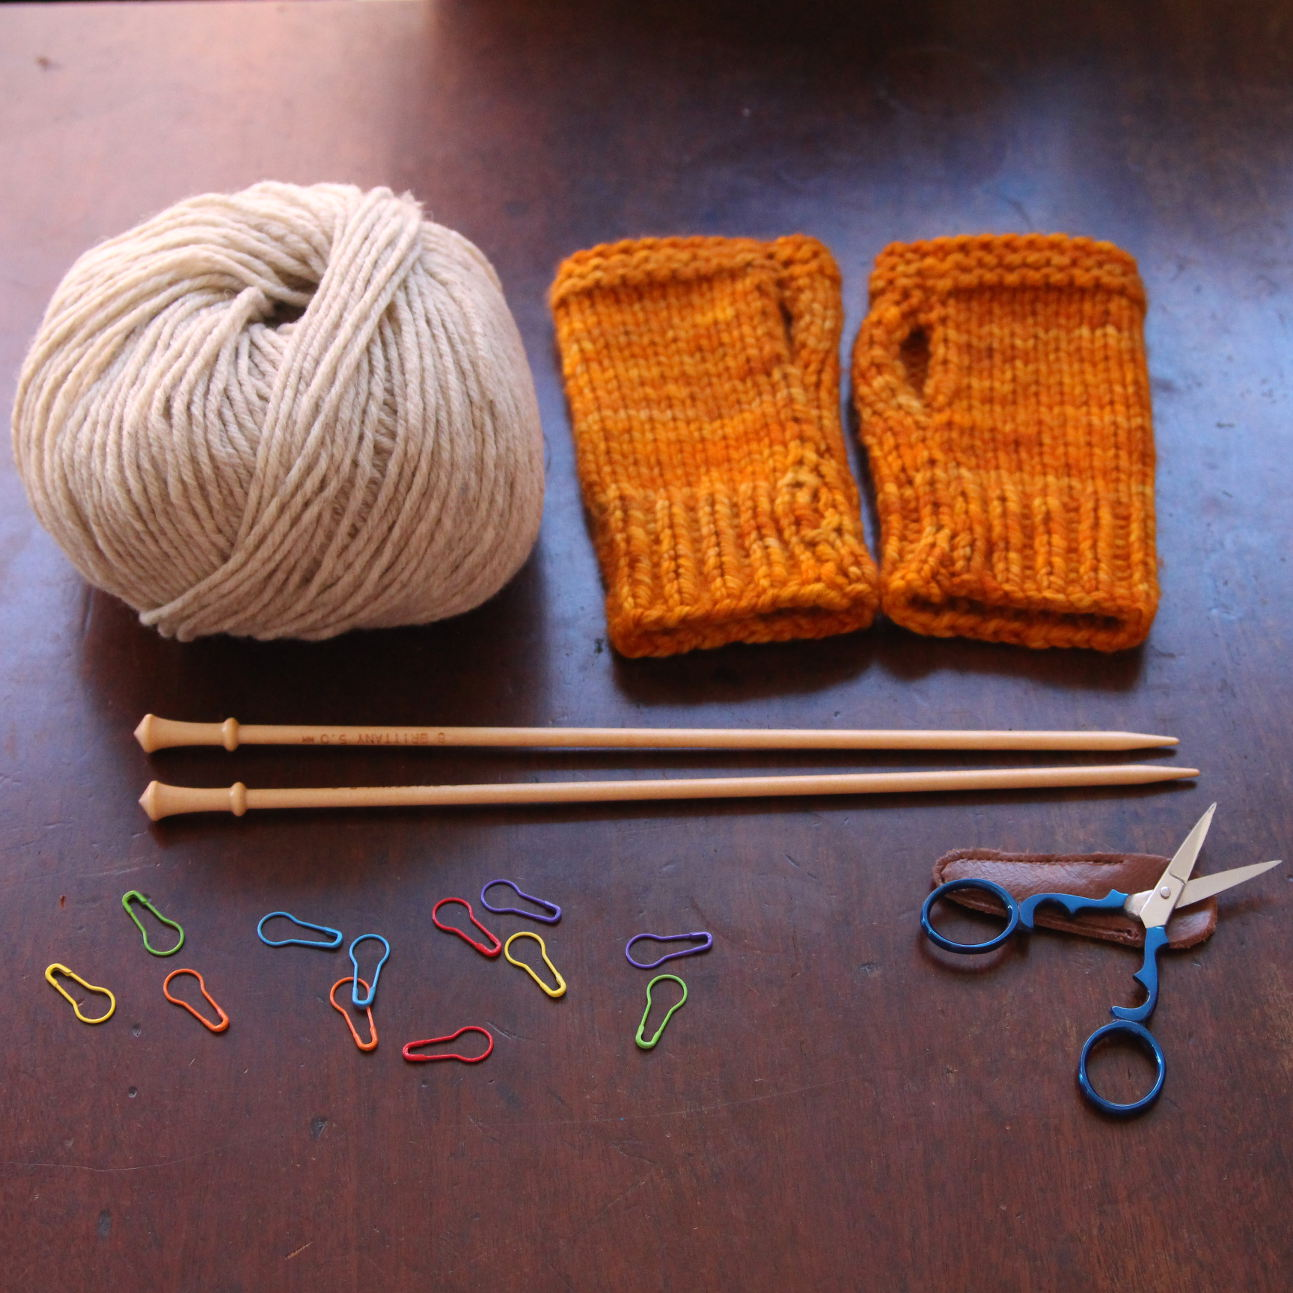 Learn to Knit, Beginners, Knitting, Classes